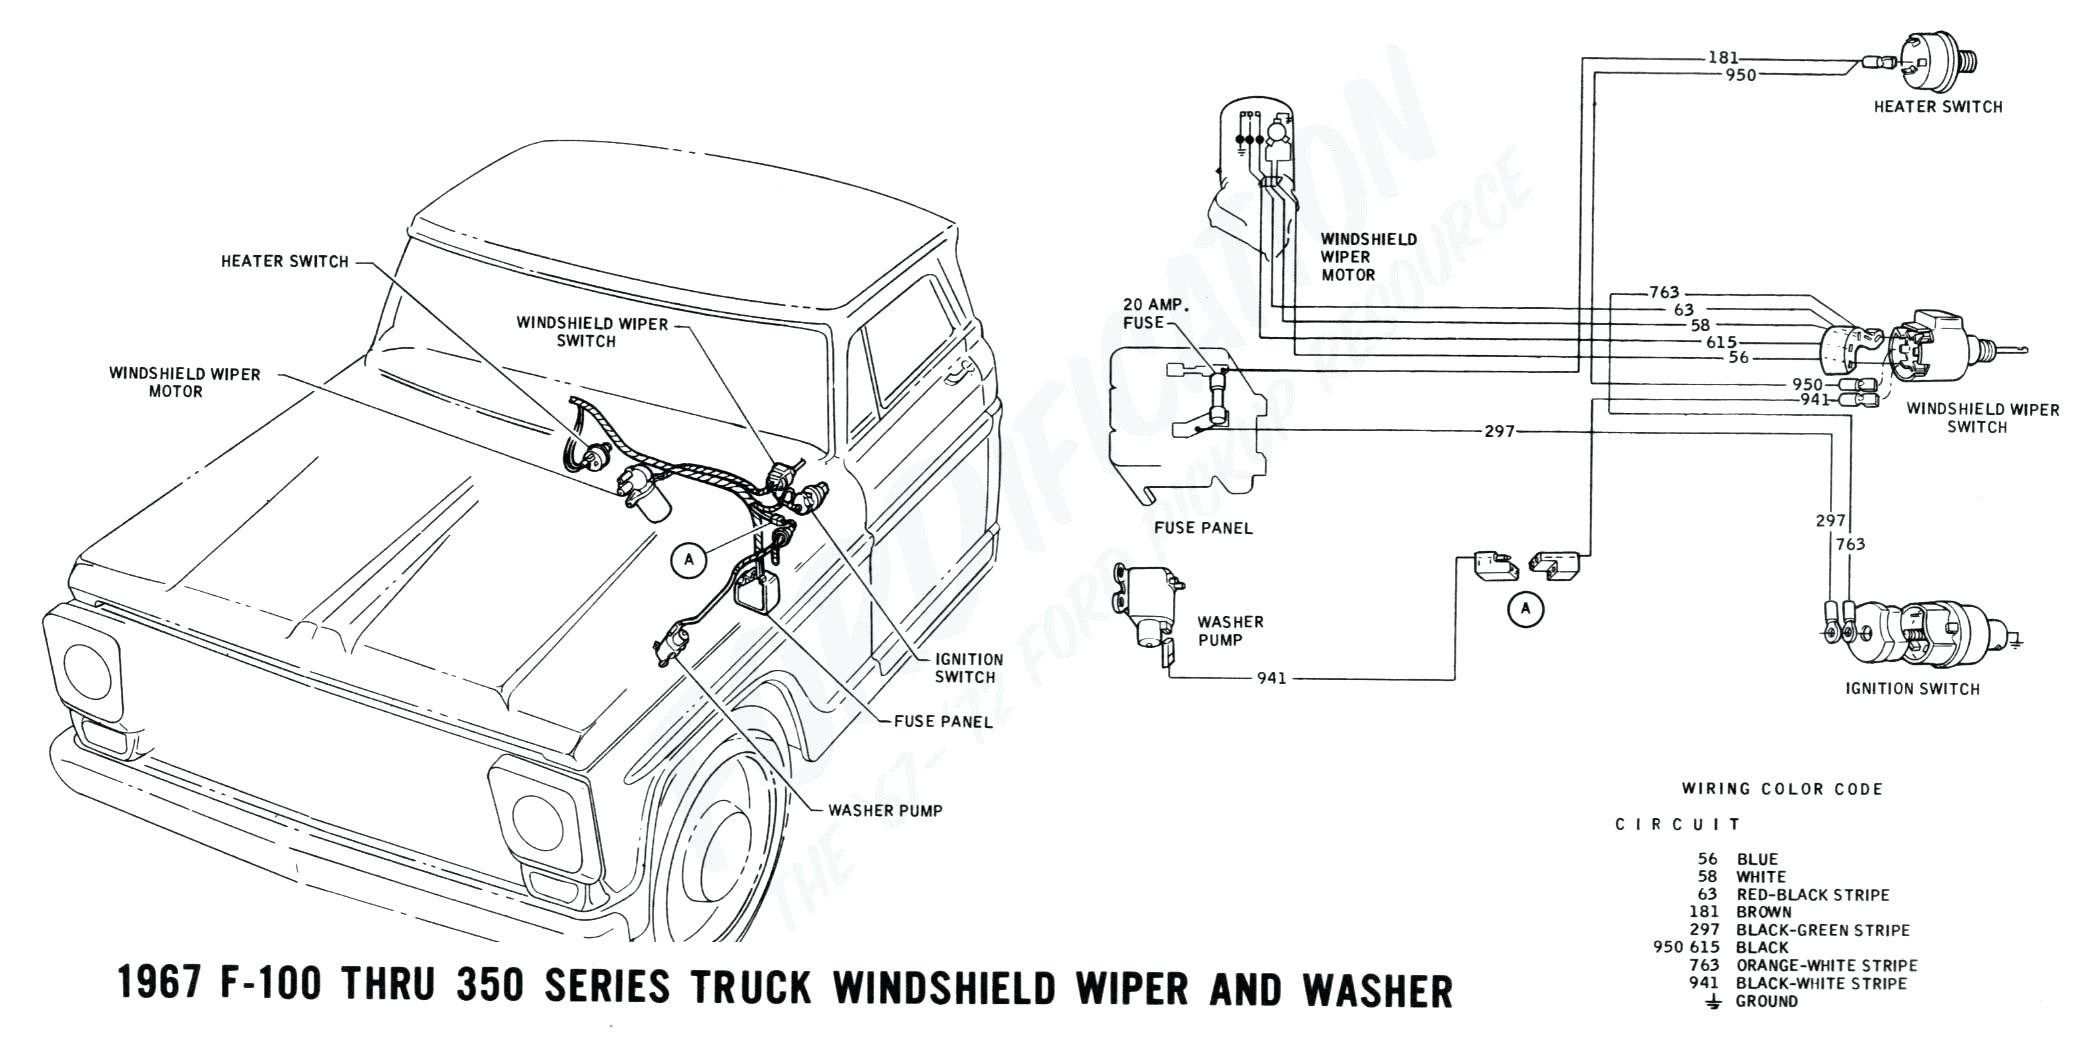 Ford F100 Wiper Motor Wiring Diagram Free Picture Wiring Diagram Extention Extention Lastanzadeltempo It